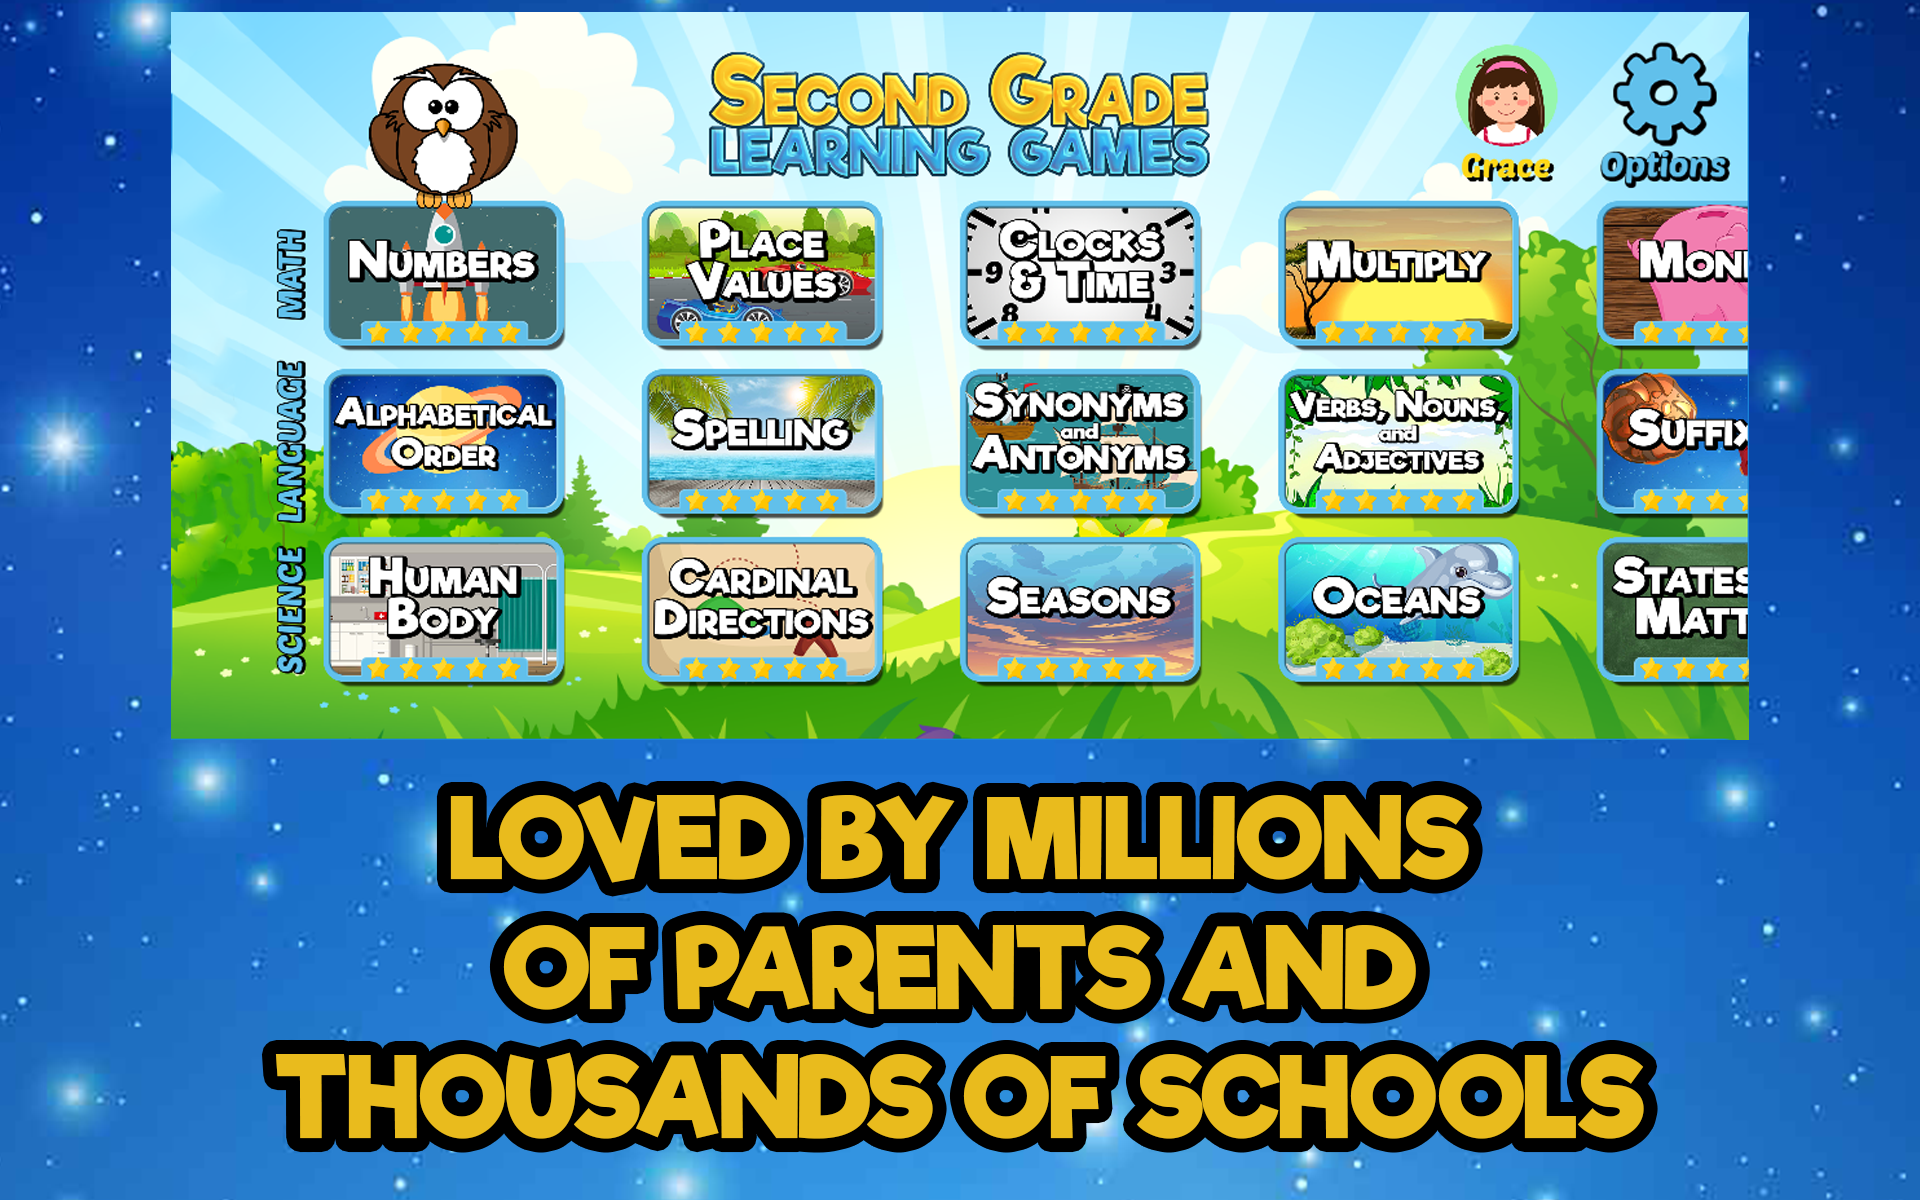 Amazon.com: Second Grade Learning Games Free: Appstore for ...